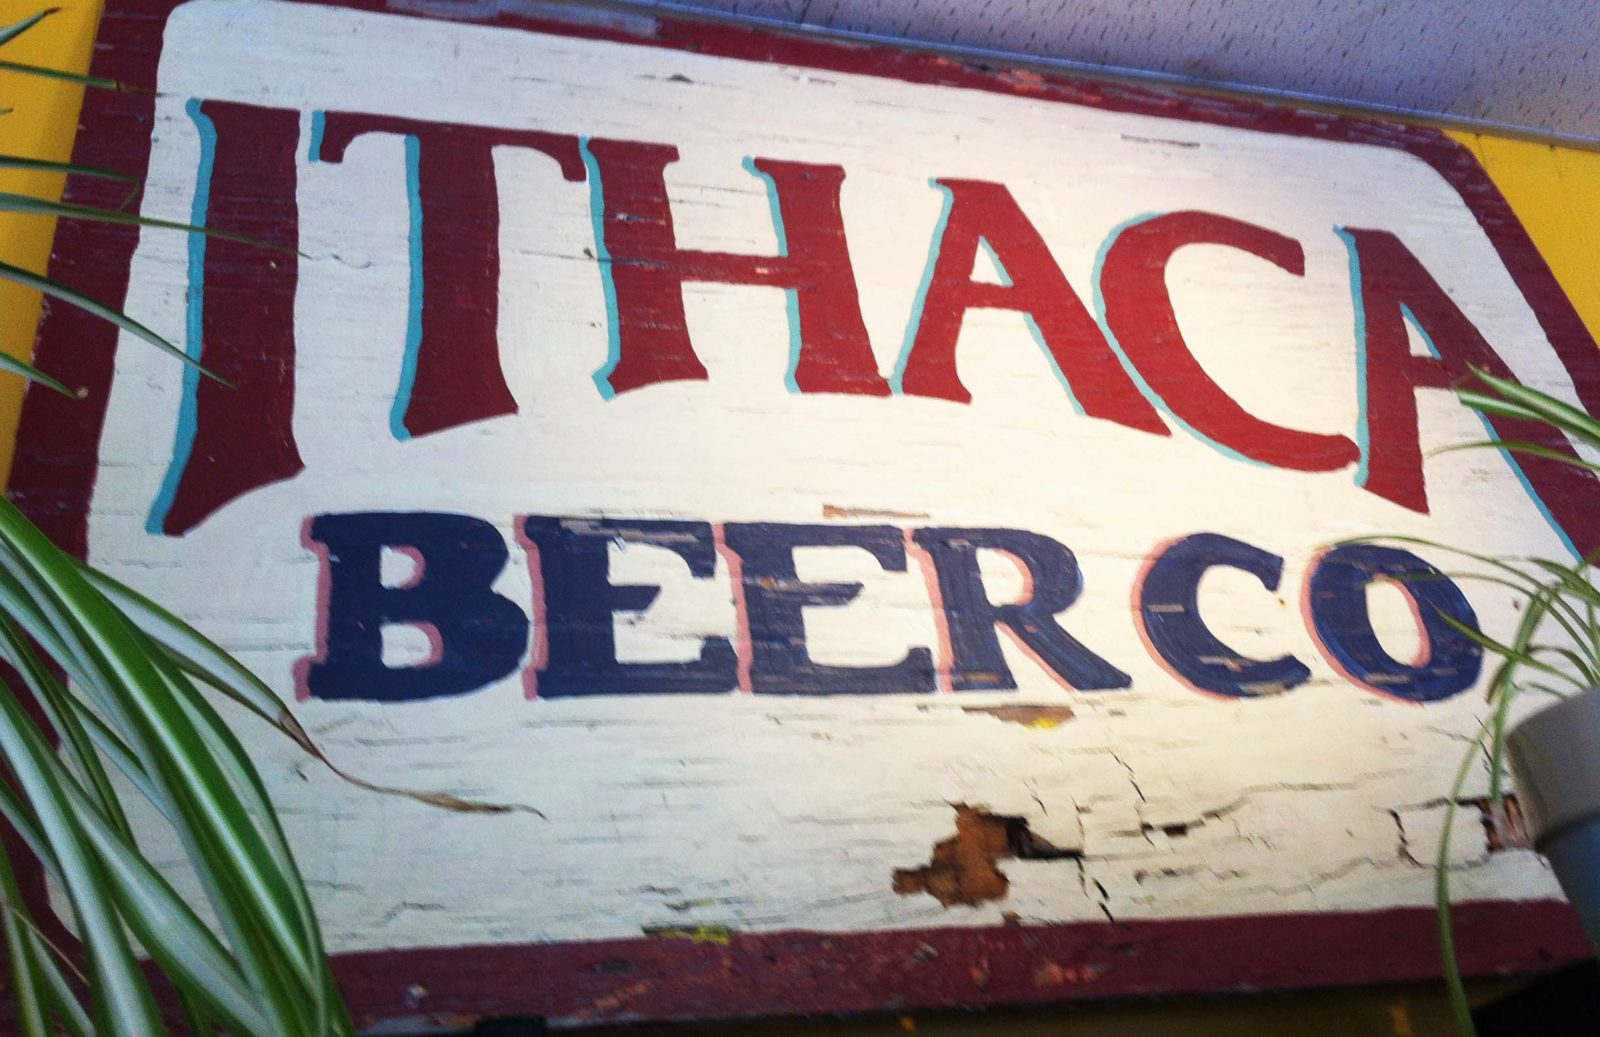 133. Ithaca Beer Co., Ithaca NY 2012